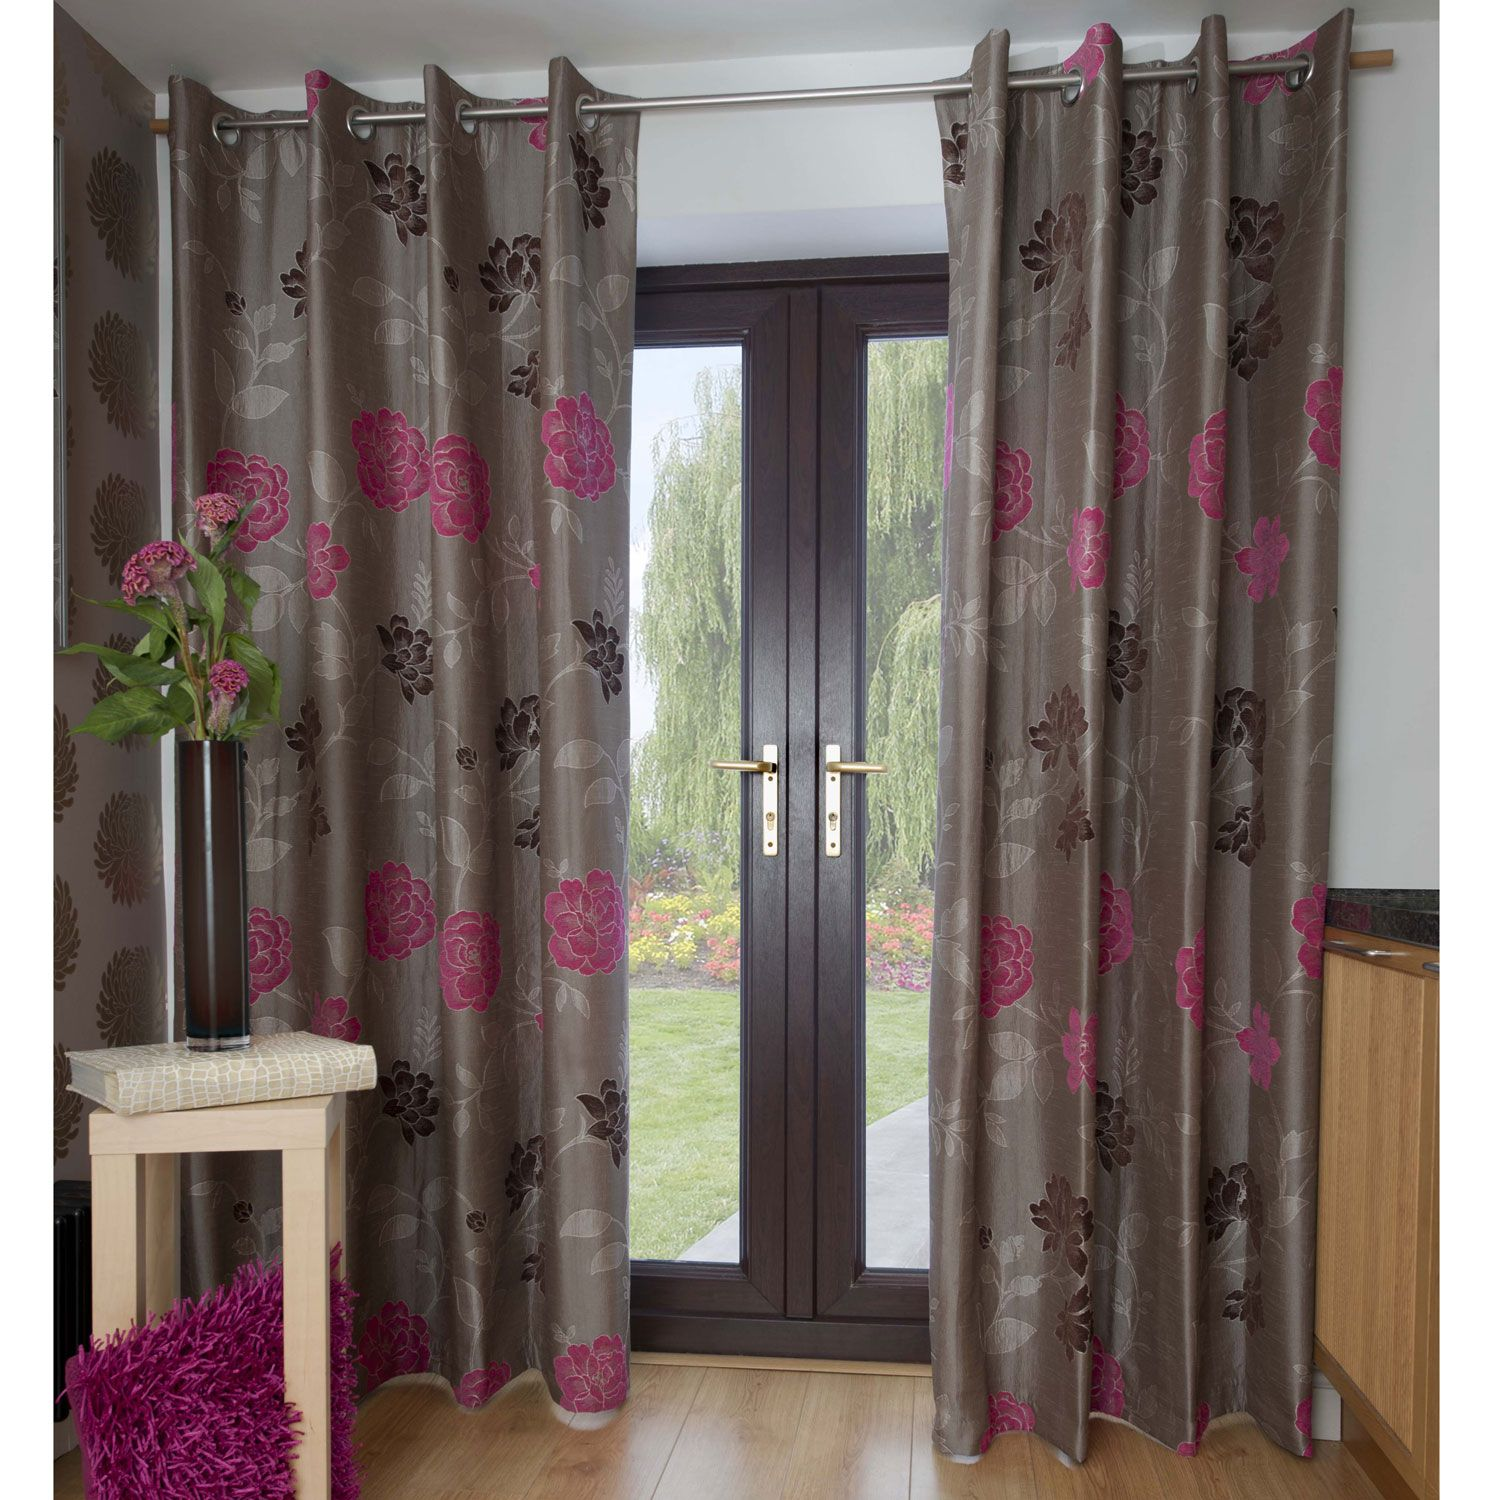 Silver Grey Shower Curtain Part - 50: Pink And Grey Shower Curtain Http://www.dovemill.co.uk